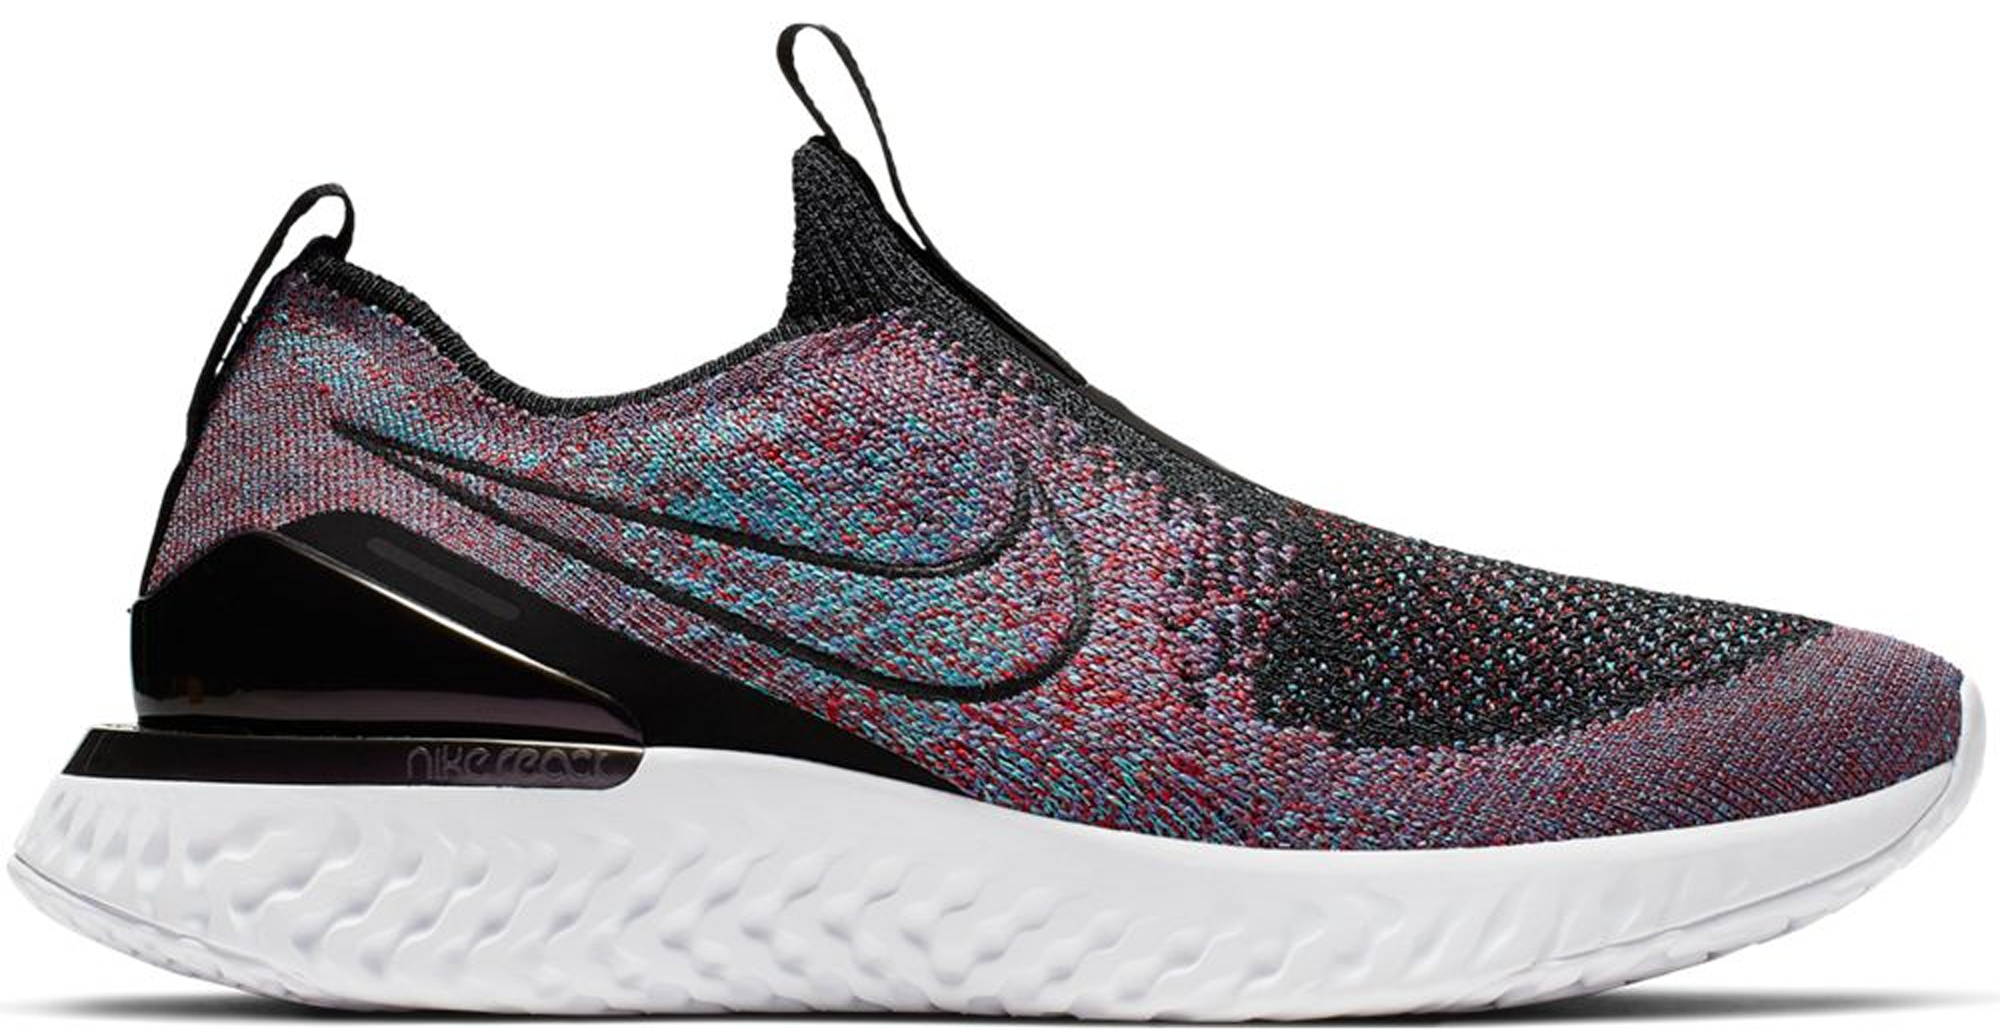 Nike Epic Phantom React Flyknit Black University Red Hyper Jade (W)